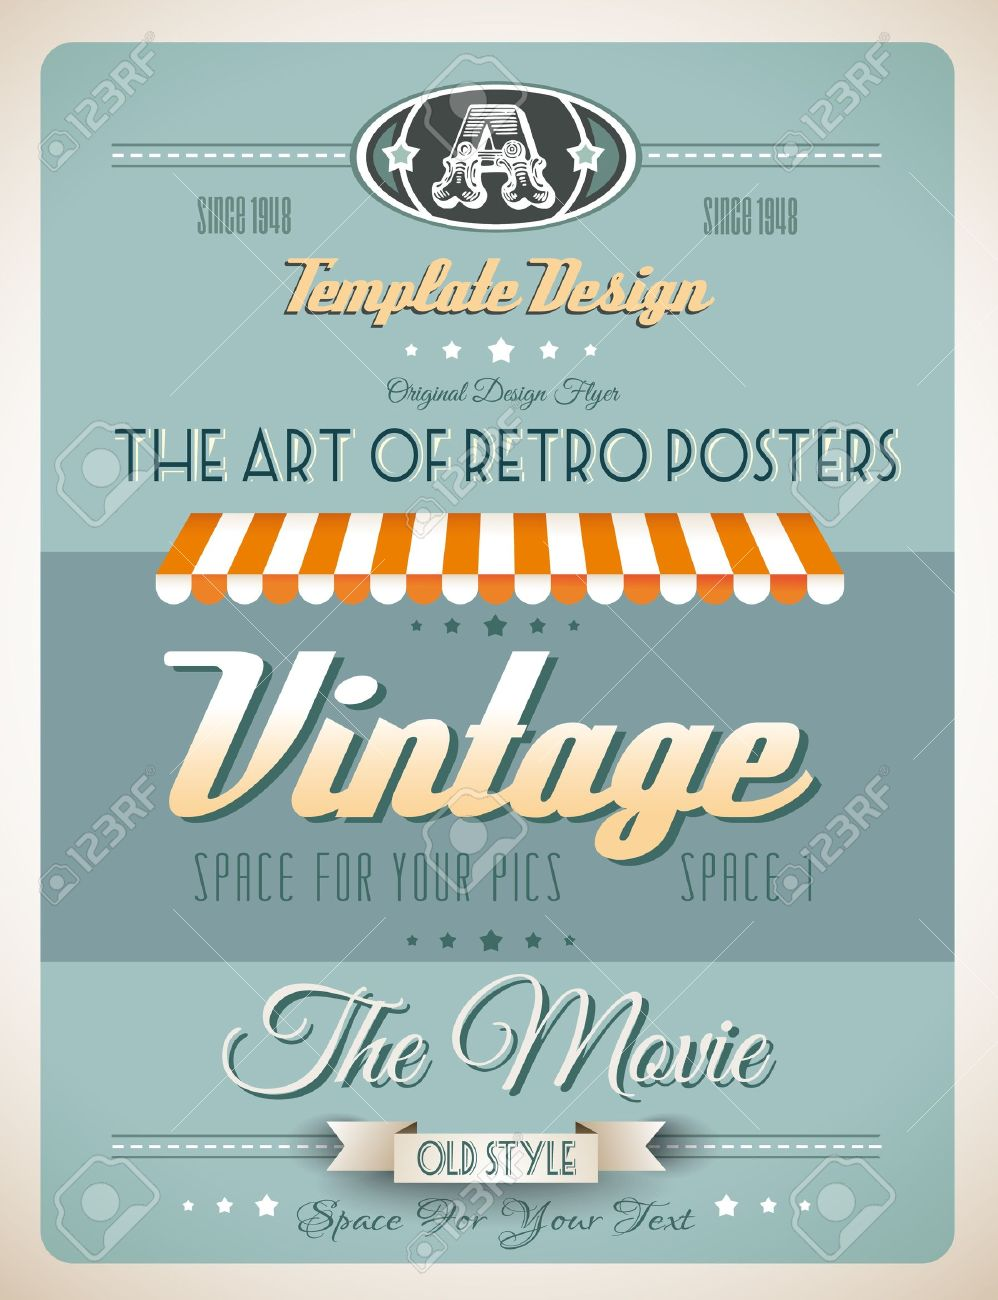 vintage retro page template for a variety of purposes website vector vintage retro page template for a variety of purposes website home page old style flyers book covers or vintage posters